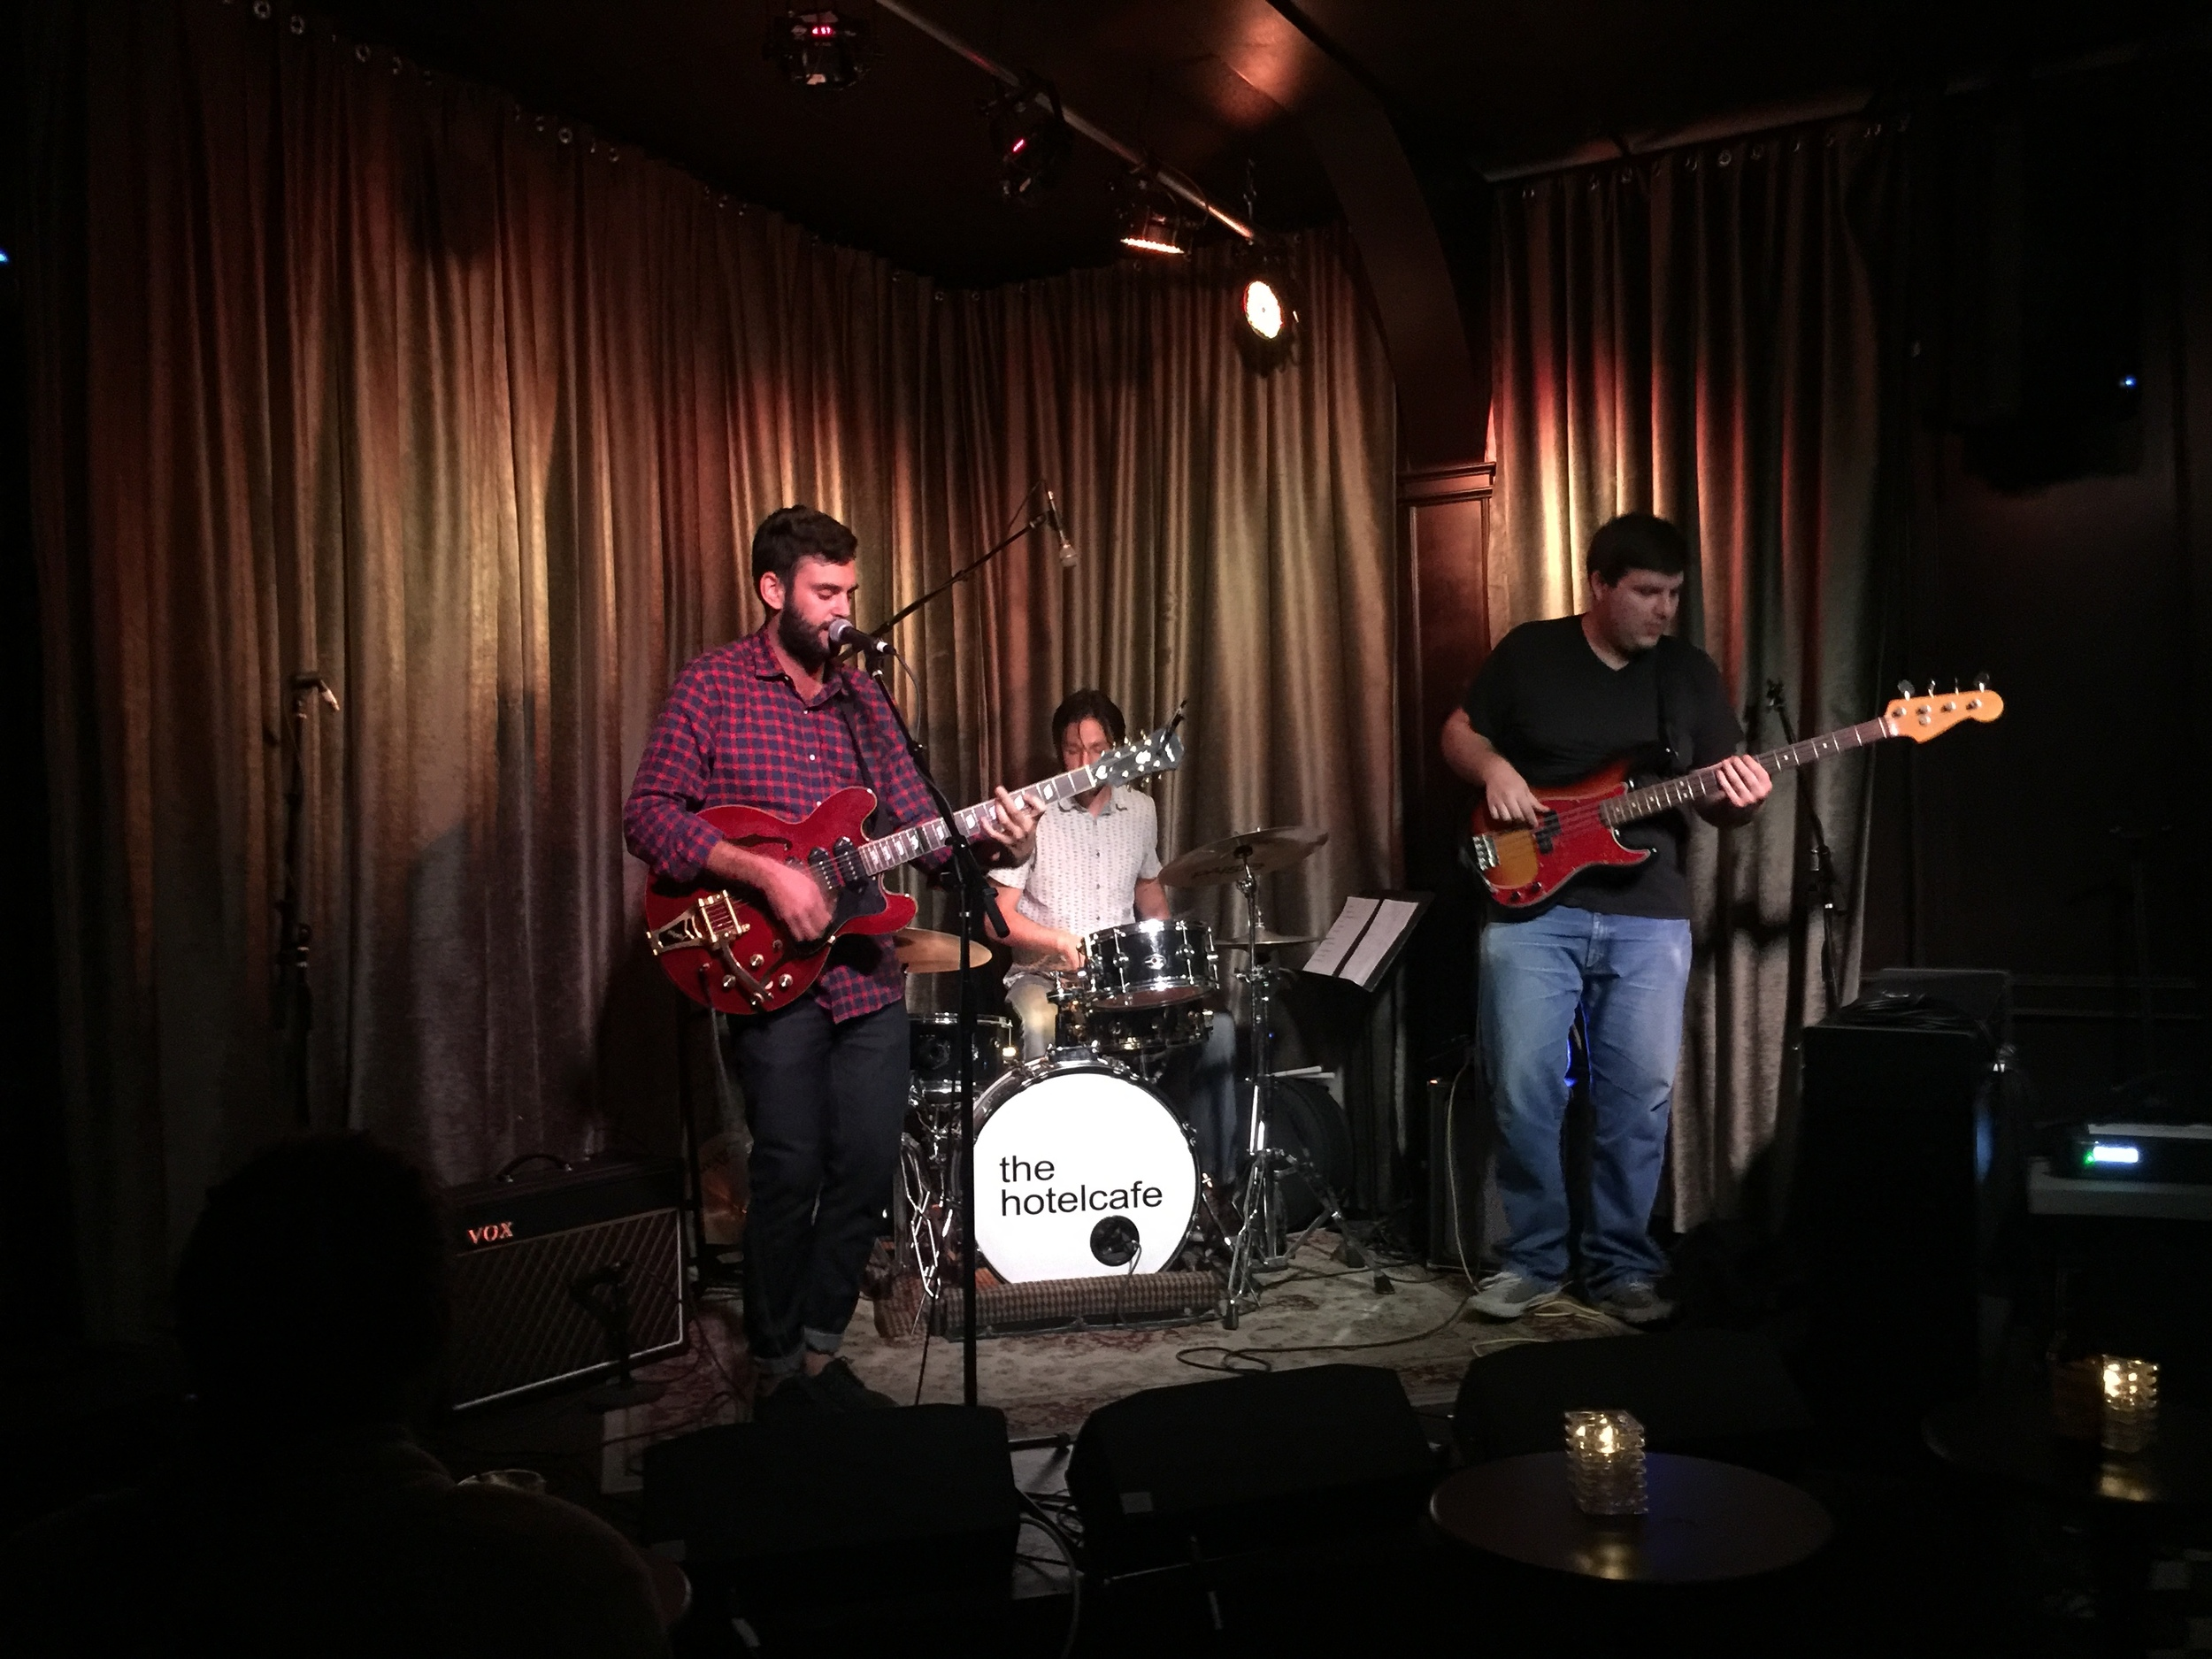 J. BONIGNO LIVE AT THE HOTEL CAFE ON 4/1/16